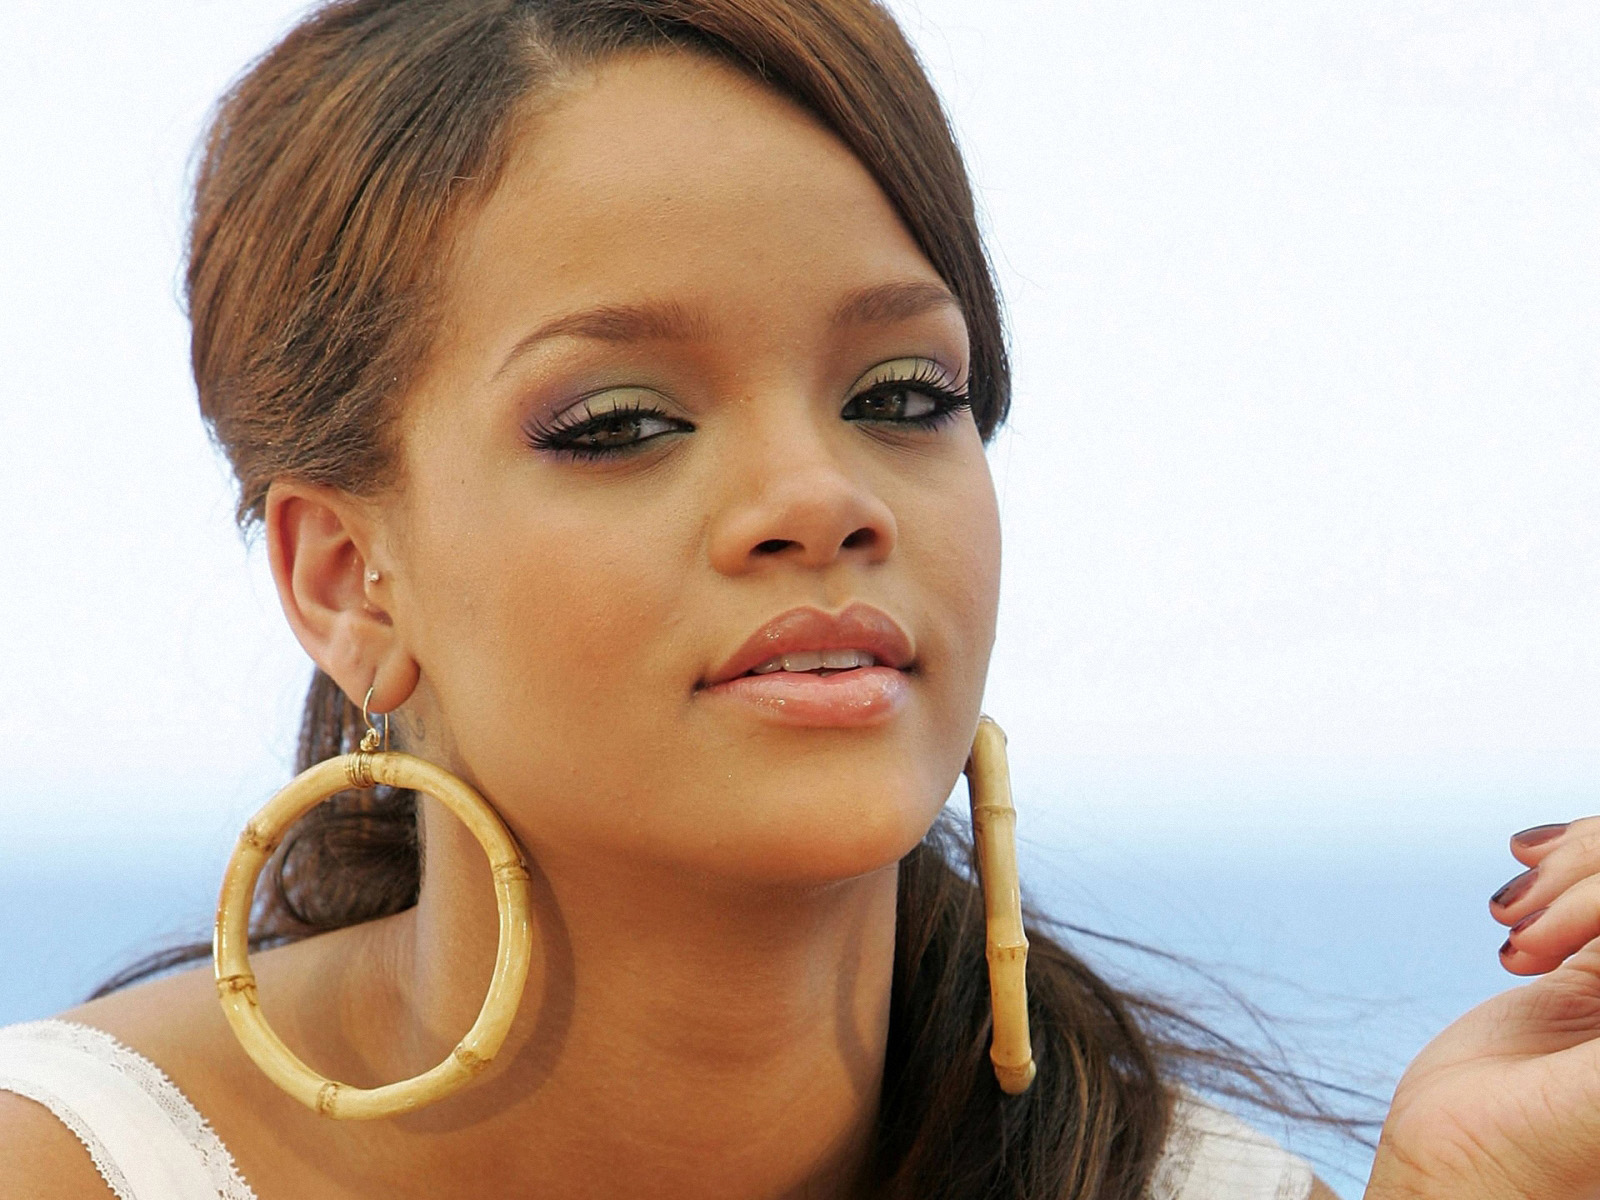 http://3.bp.blogspot.com/-1TT-XE_-w3Q/T7VYMC6f22I/AAAAAAAAA4U/RfAiw8-QwyY/s1600/Rihanna+Wallpapers+for+Windows+03.jpg